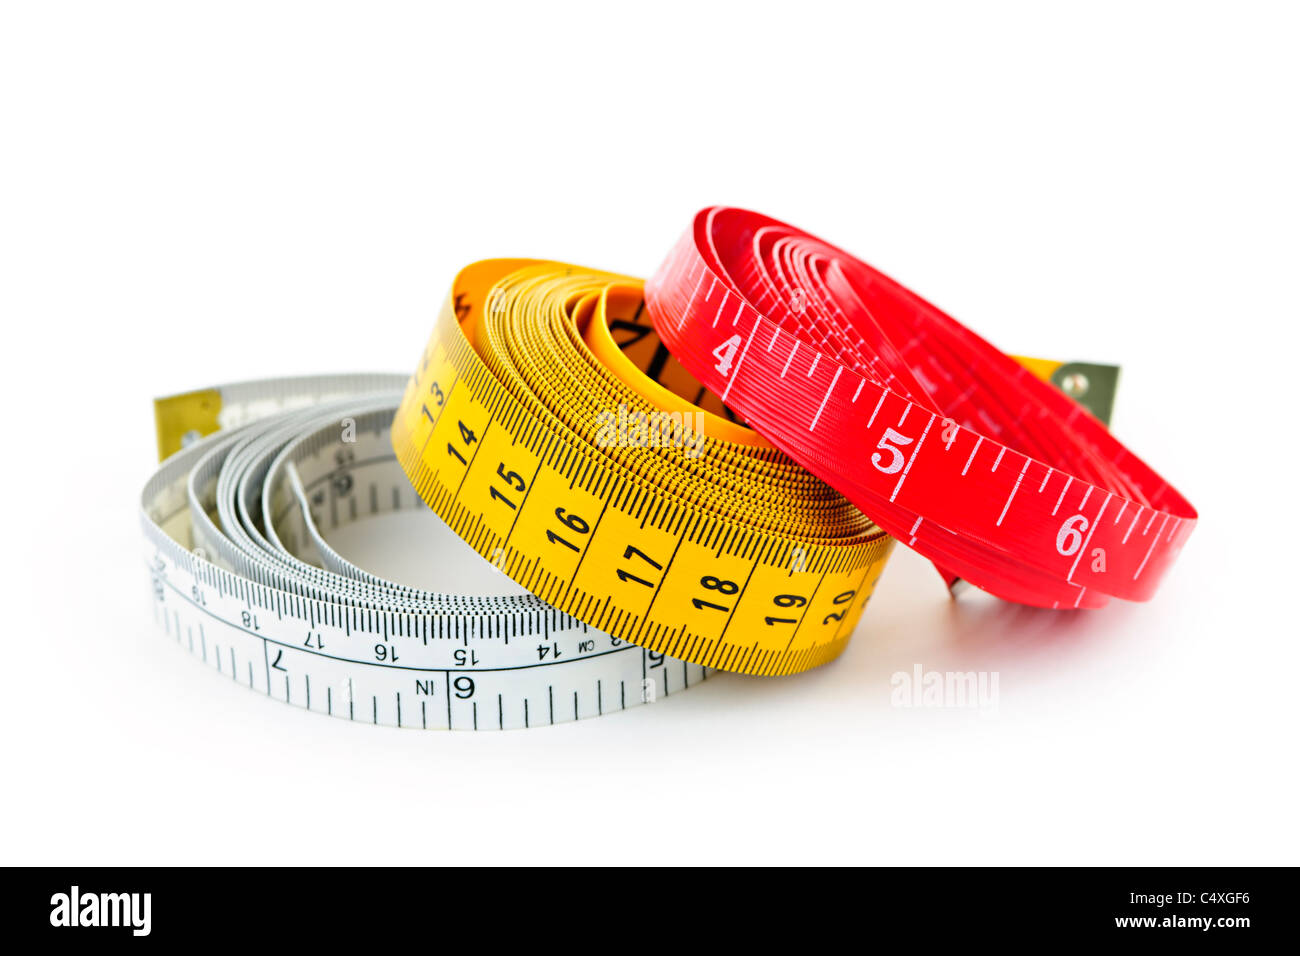 Three colorful measuring tapes coiled on white background - Stock Image